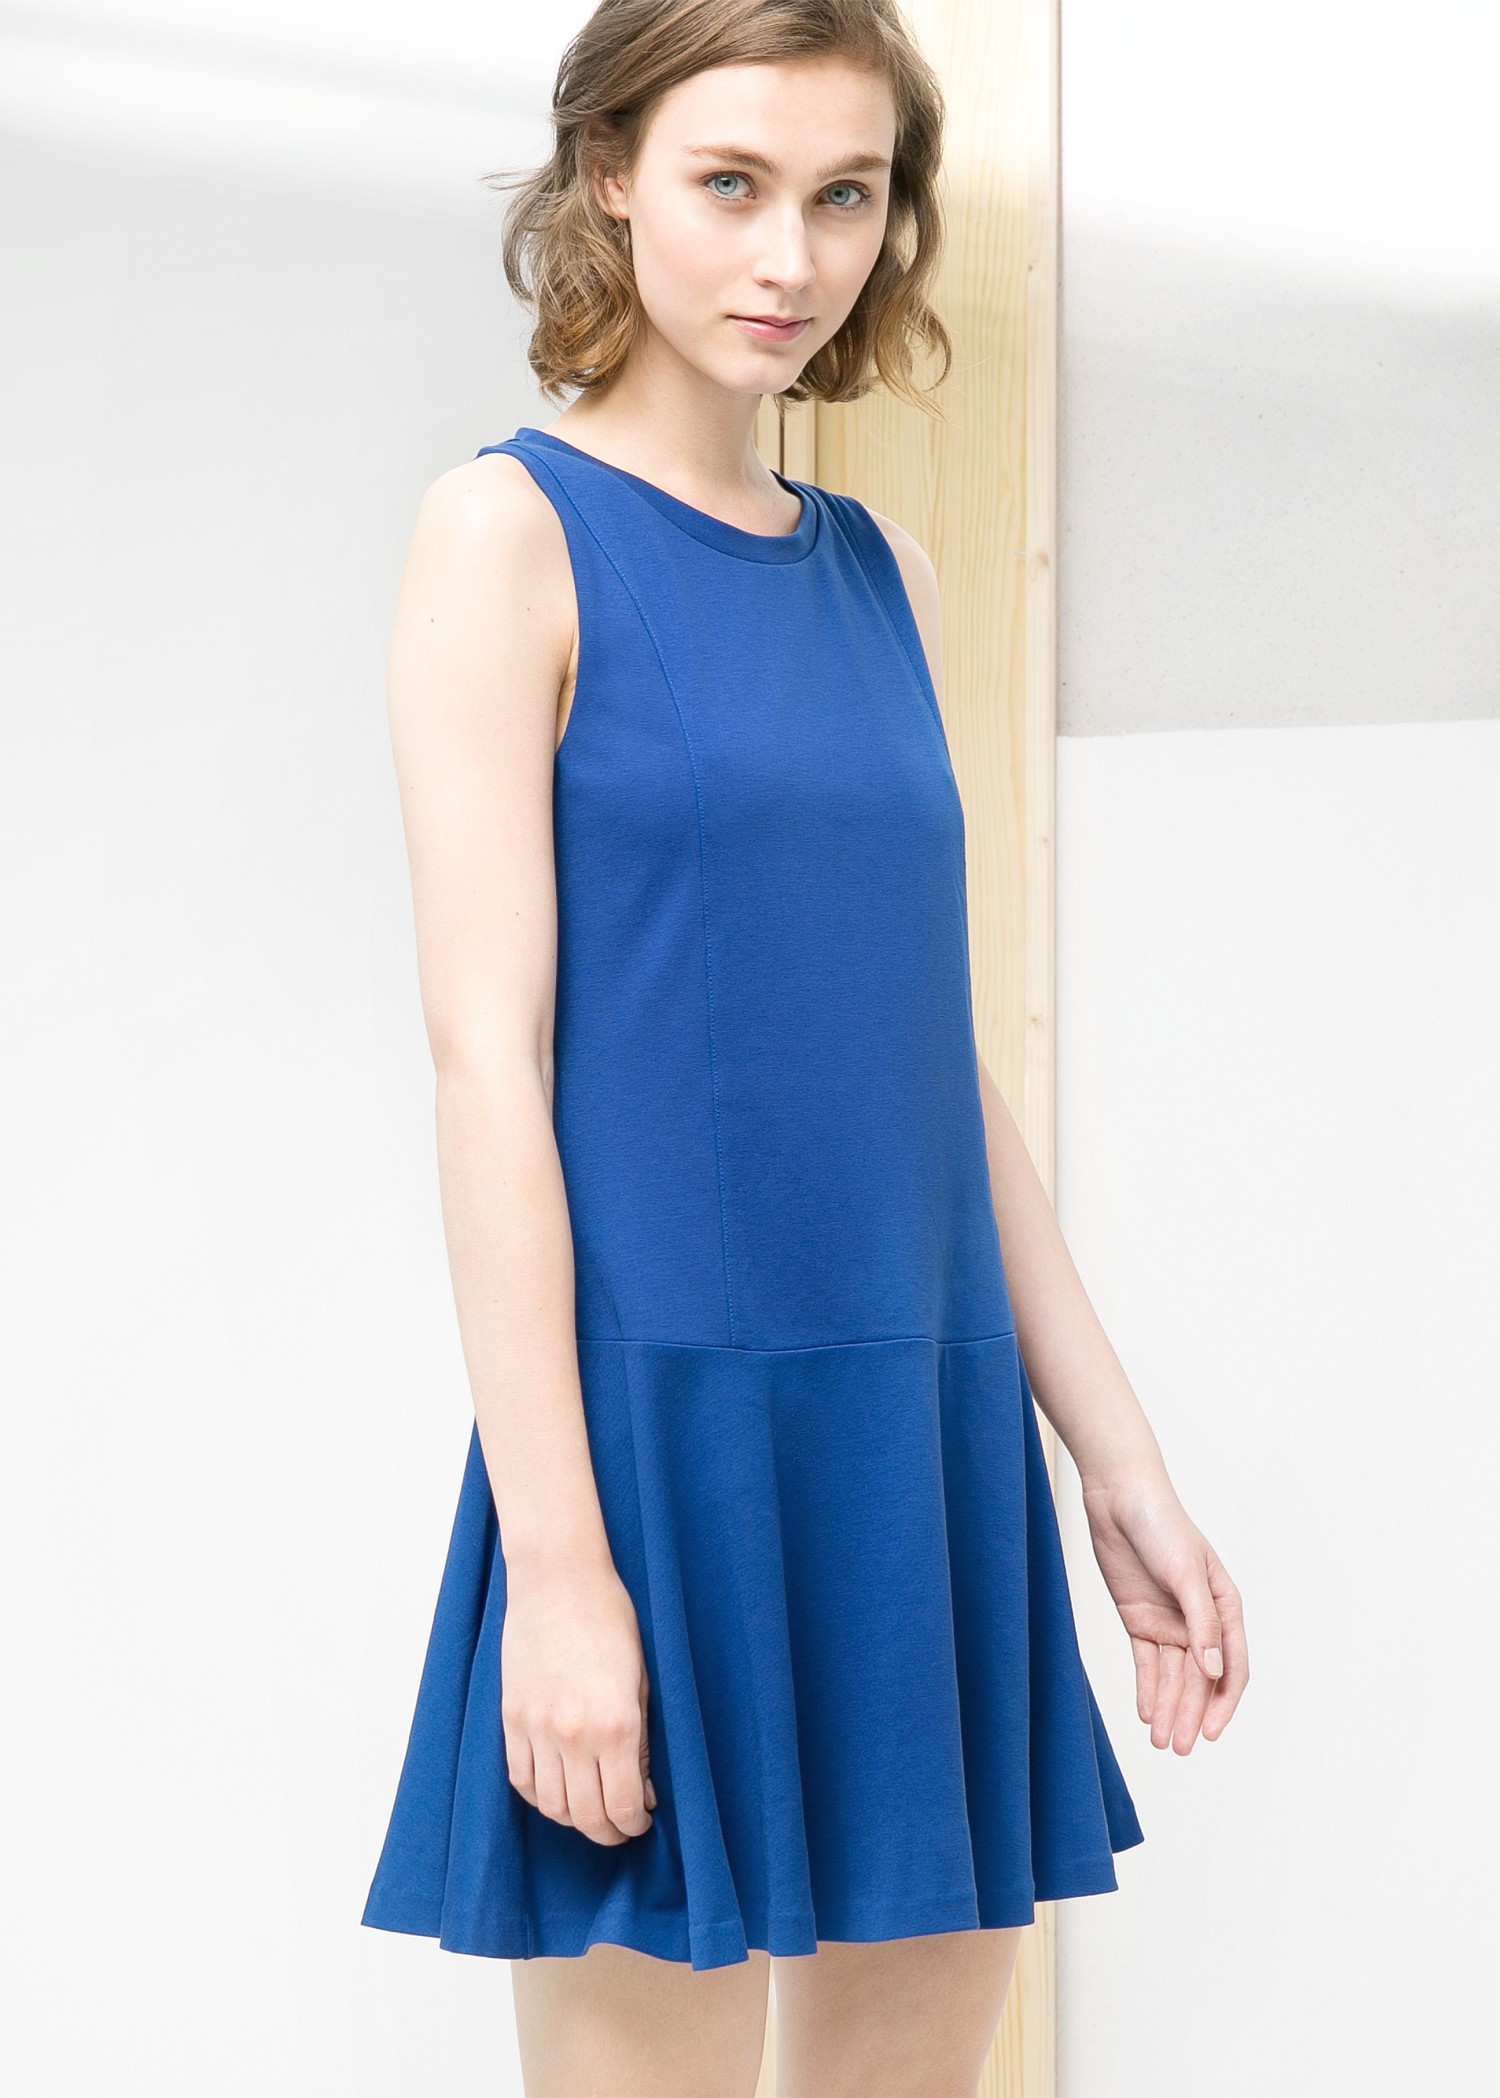 You searched for: blue flared dress! Etsy is the home to thousands of handmade, vintage, and one-of-a-kind products and gifts related to your search. No matter what you're looking for or where you are in the world, our global marketplace of sellers can help you find unique and affordable options. Let's get started!